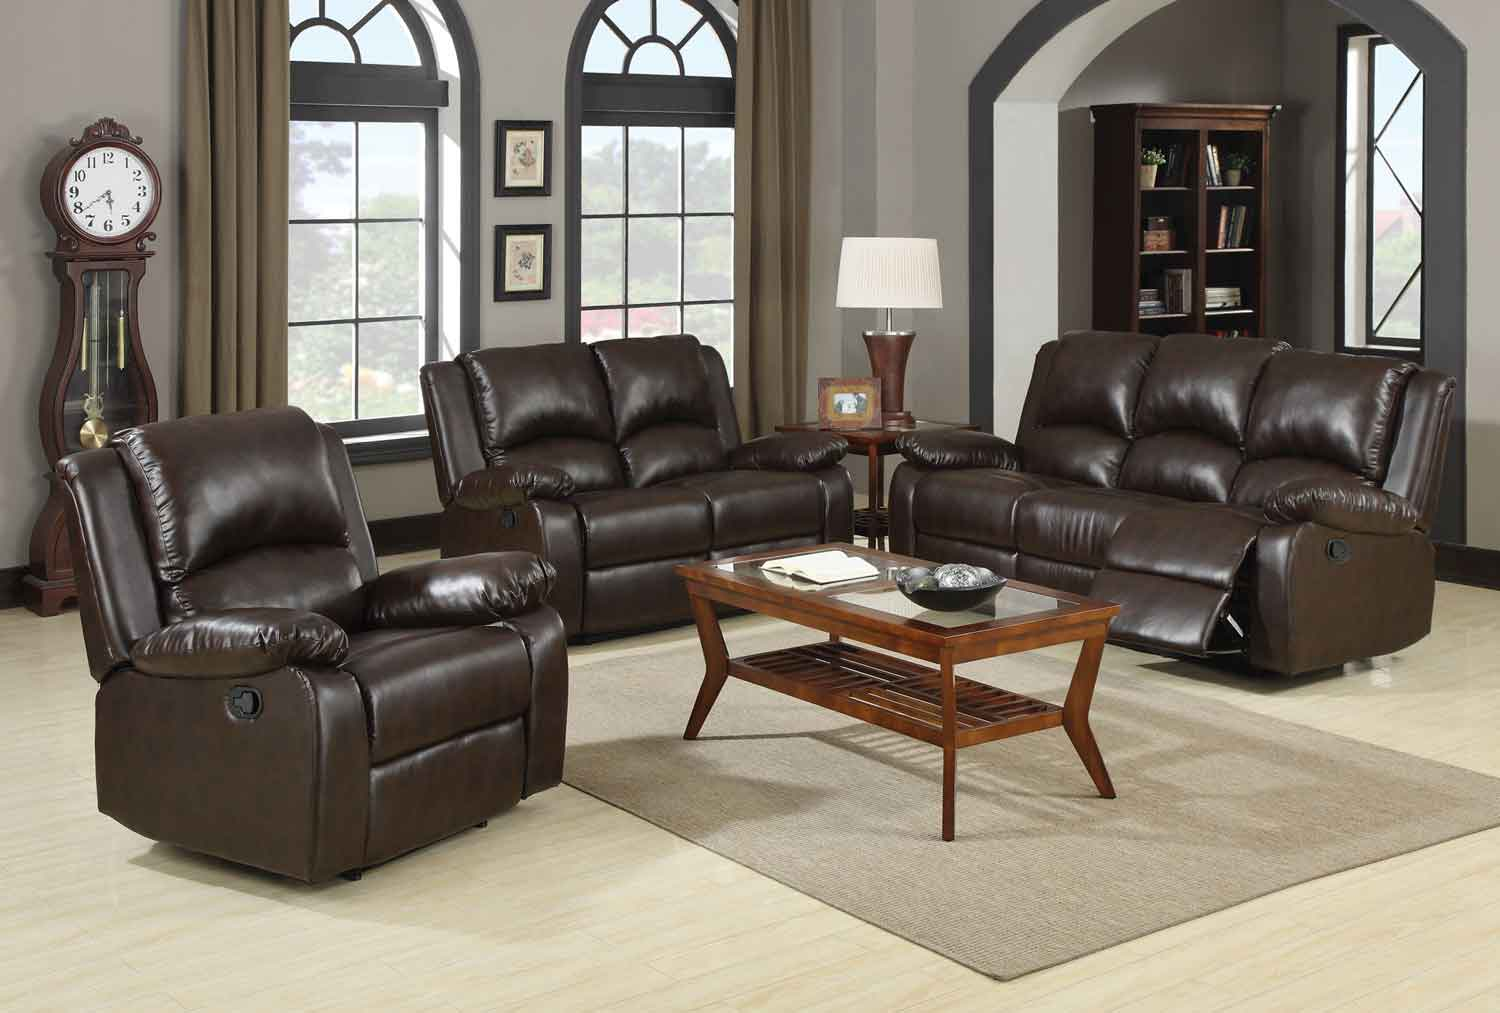 Coaster boston motion living room set brown 600971 livset at for Motion living room furniture